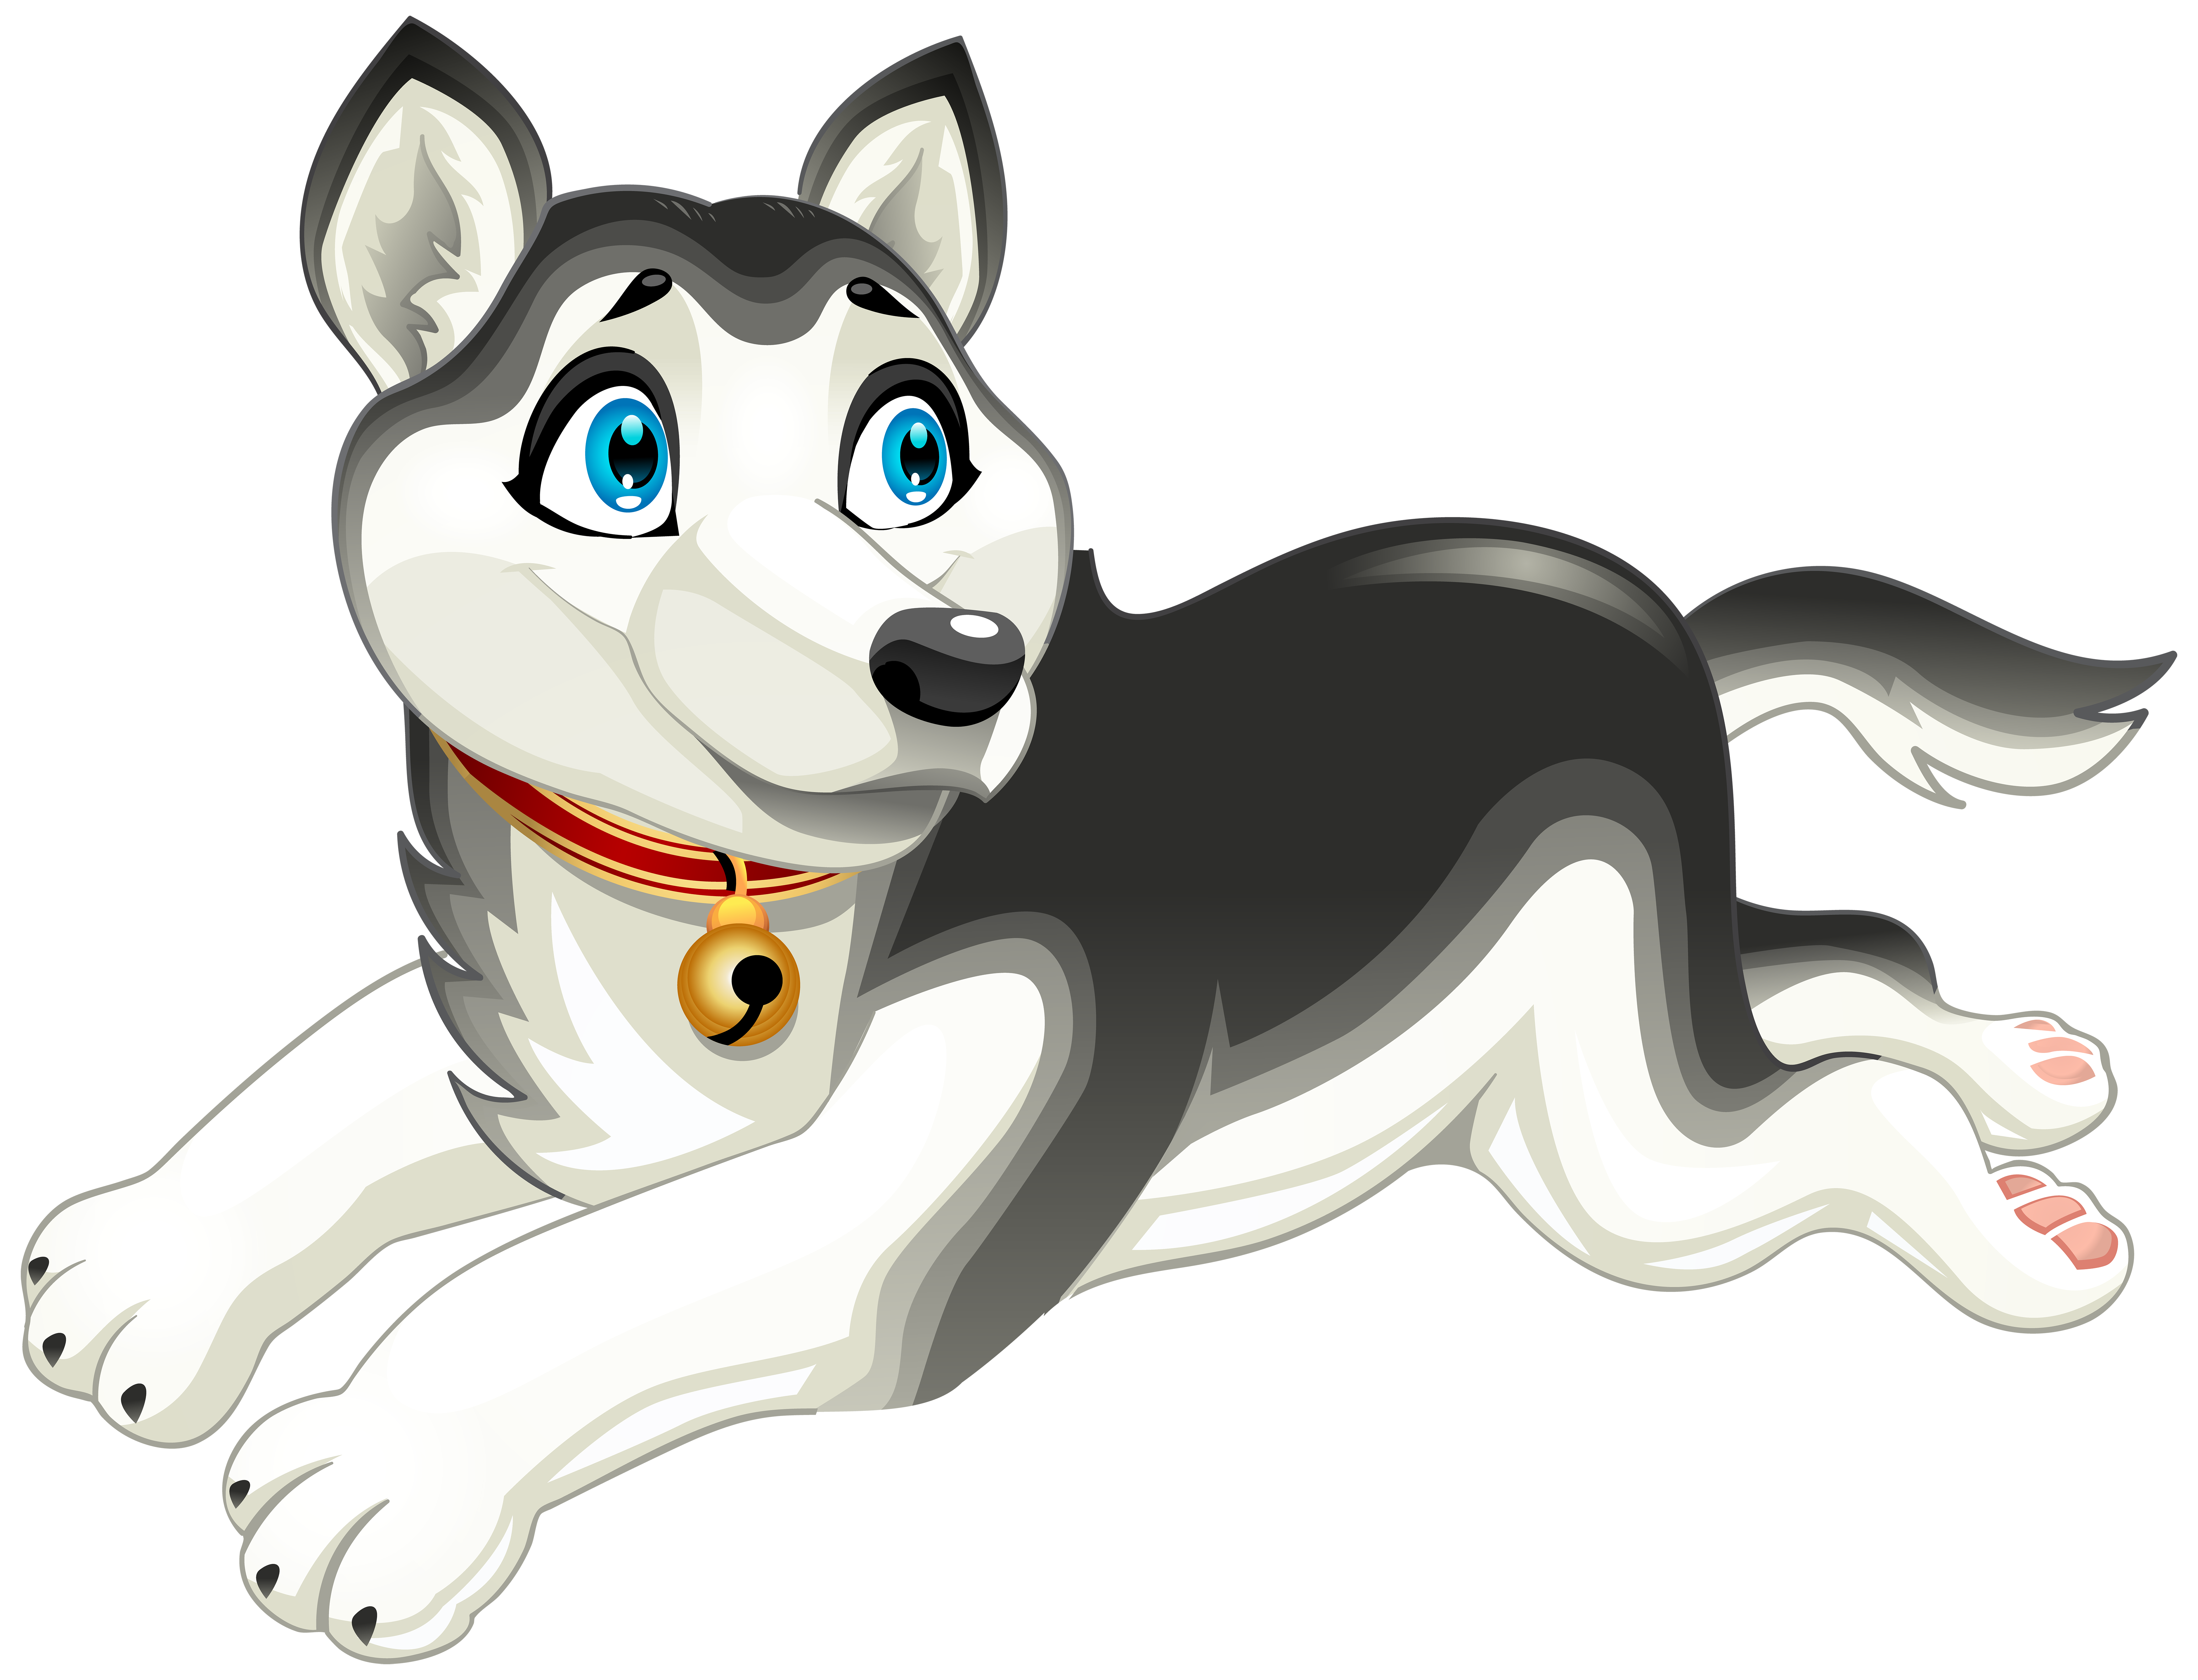 Cartoon Dog Png - Animated Dog PNG HD Transparent Animated Dog HD.PNG Images. | PlusPNG